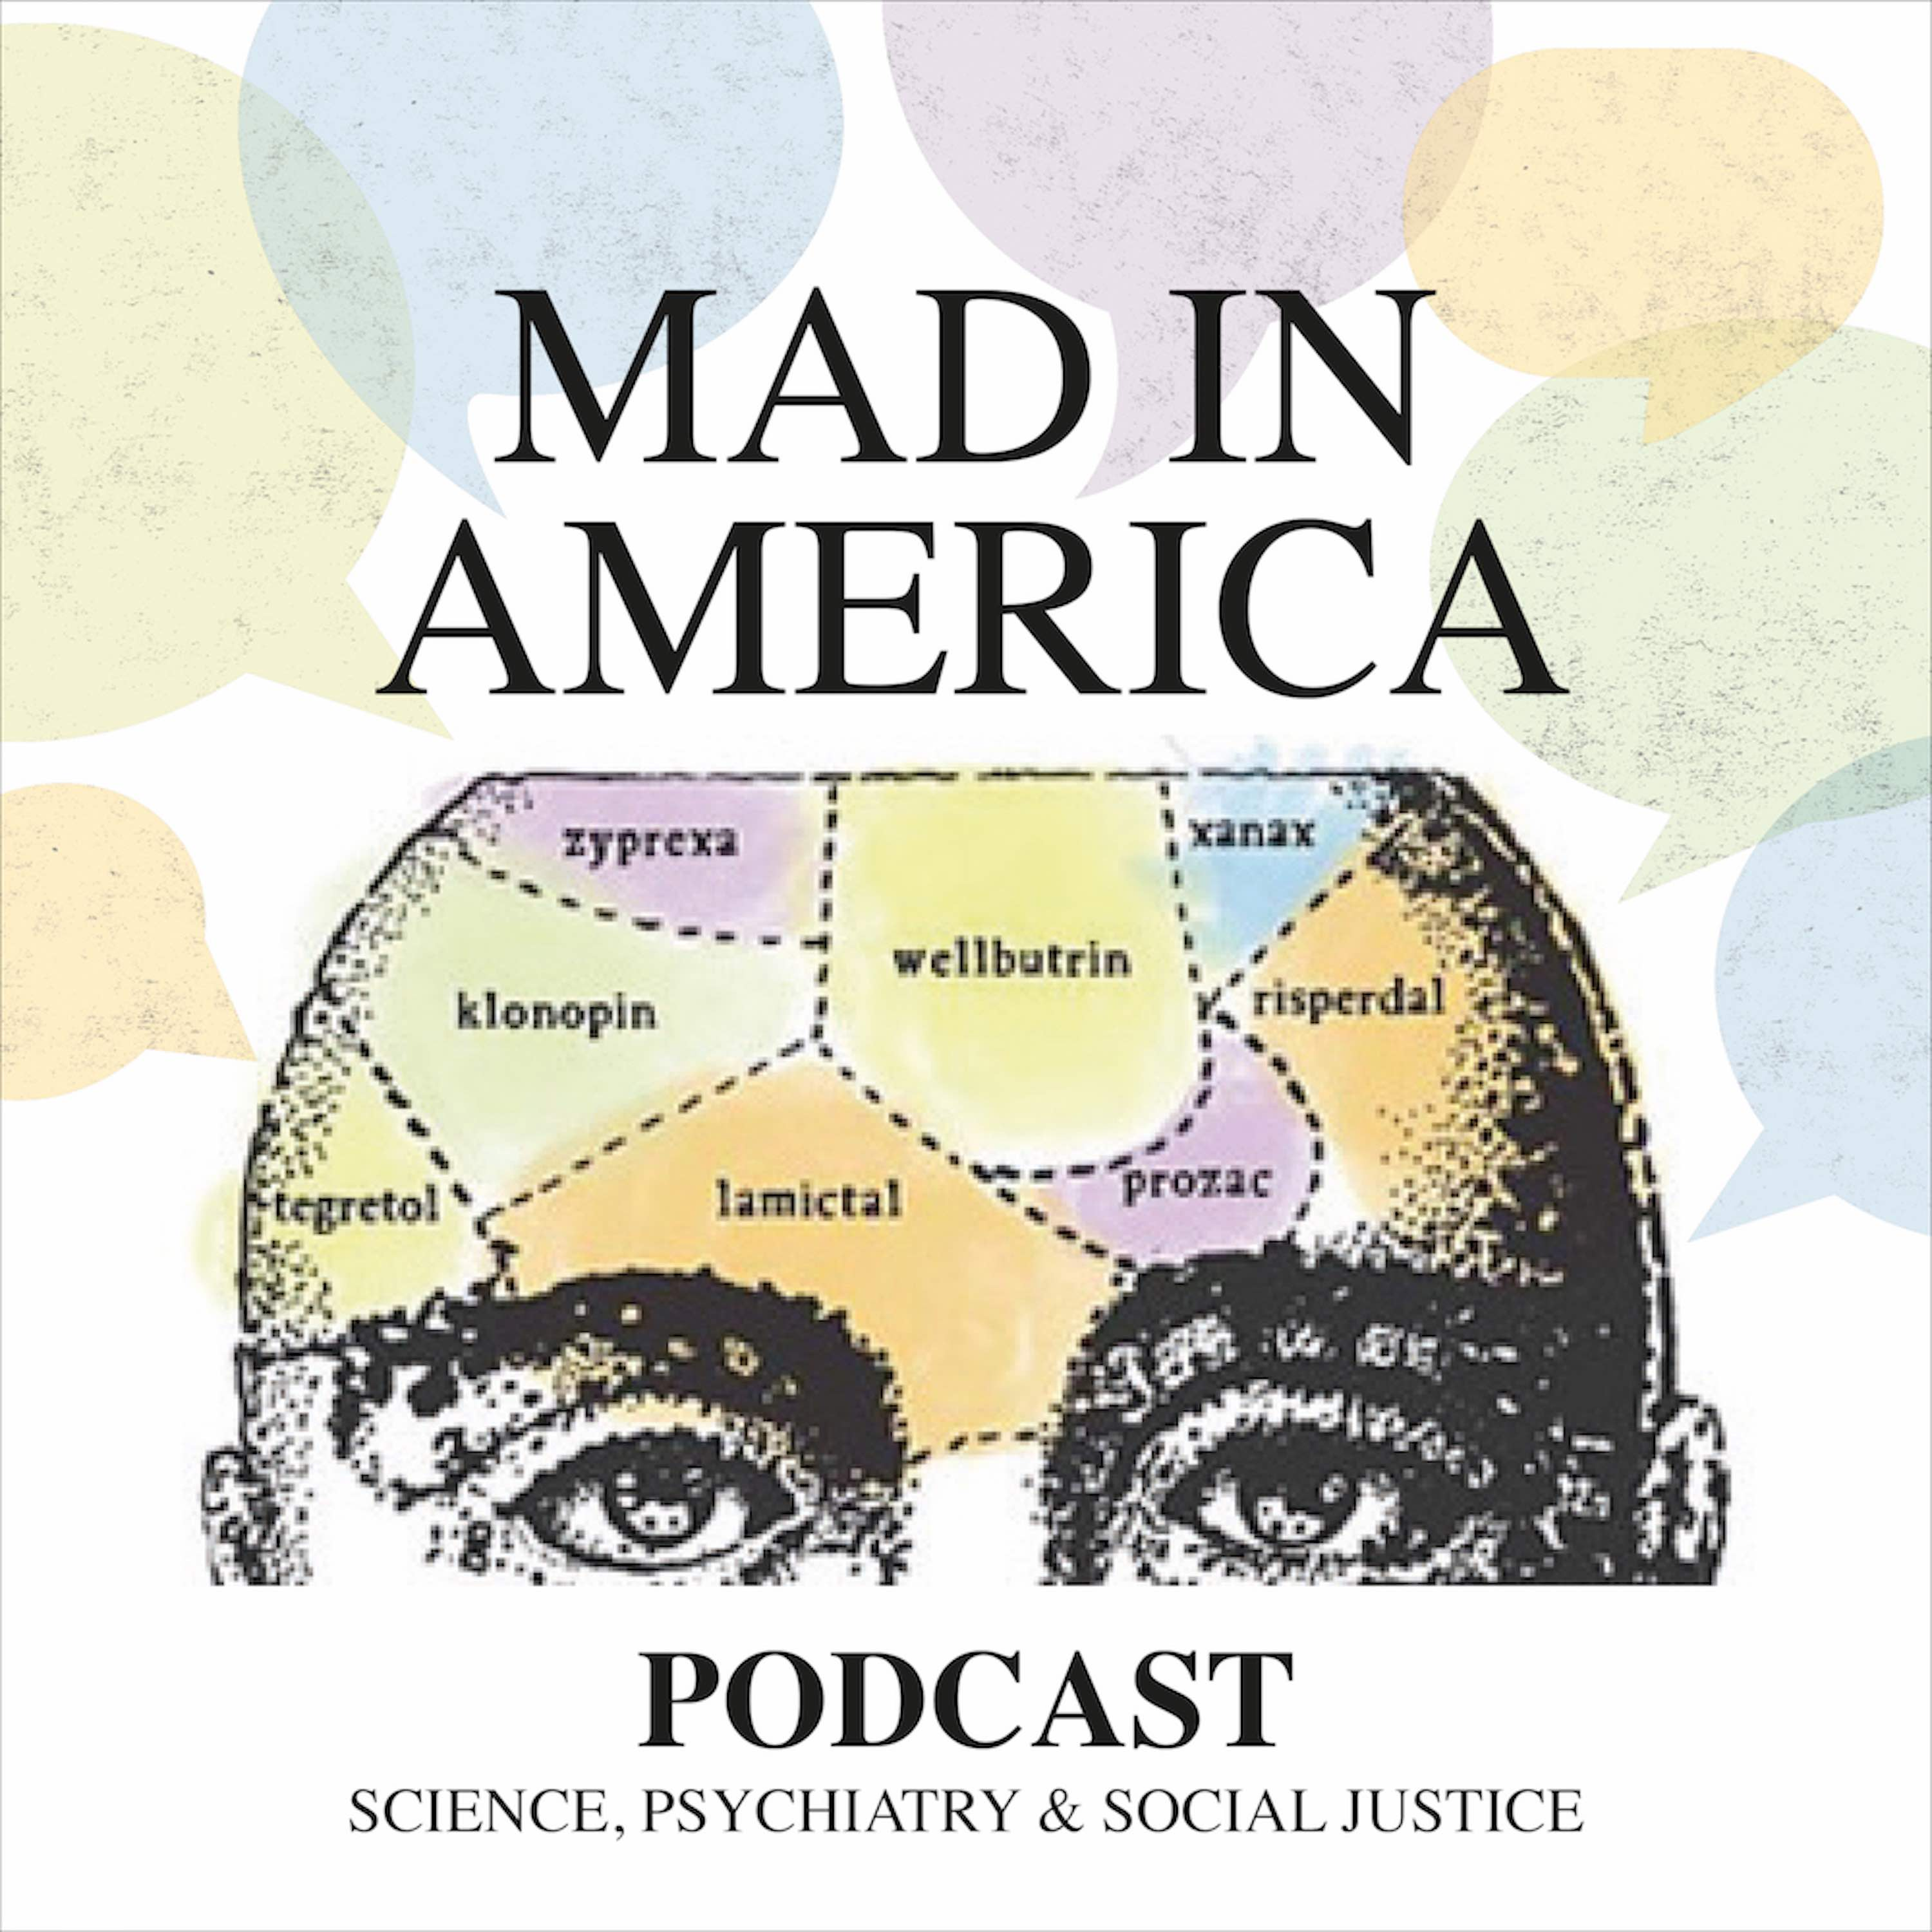 Mad in America: Rethinking Mental Health - Jenny Freeman - Climate Change, Mental Health and Collective Action